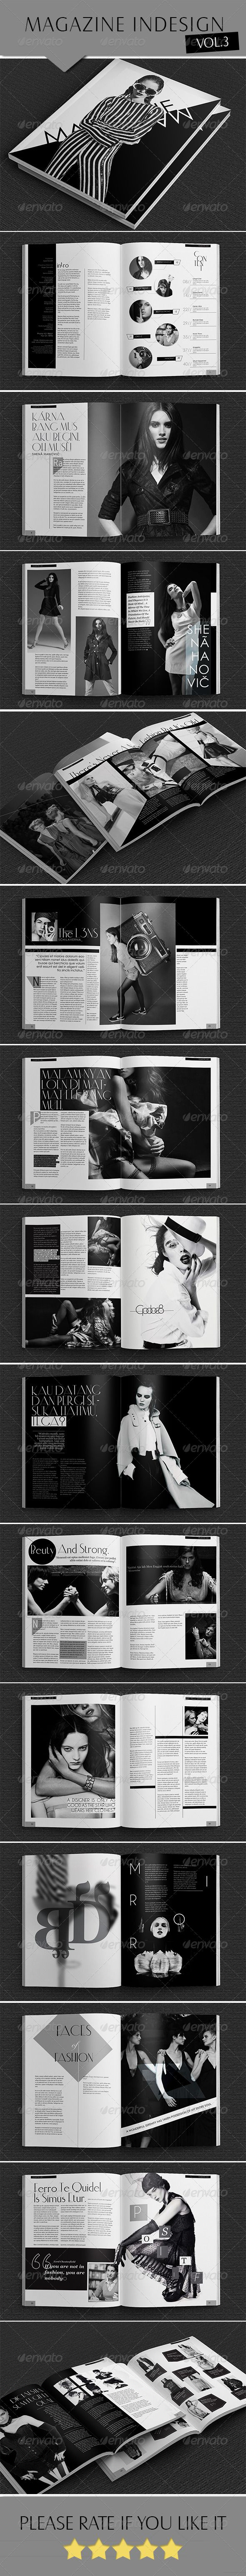 Indesign B/W Magazine